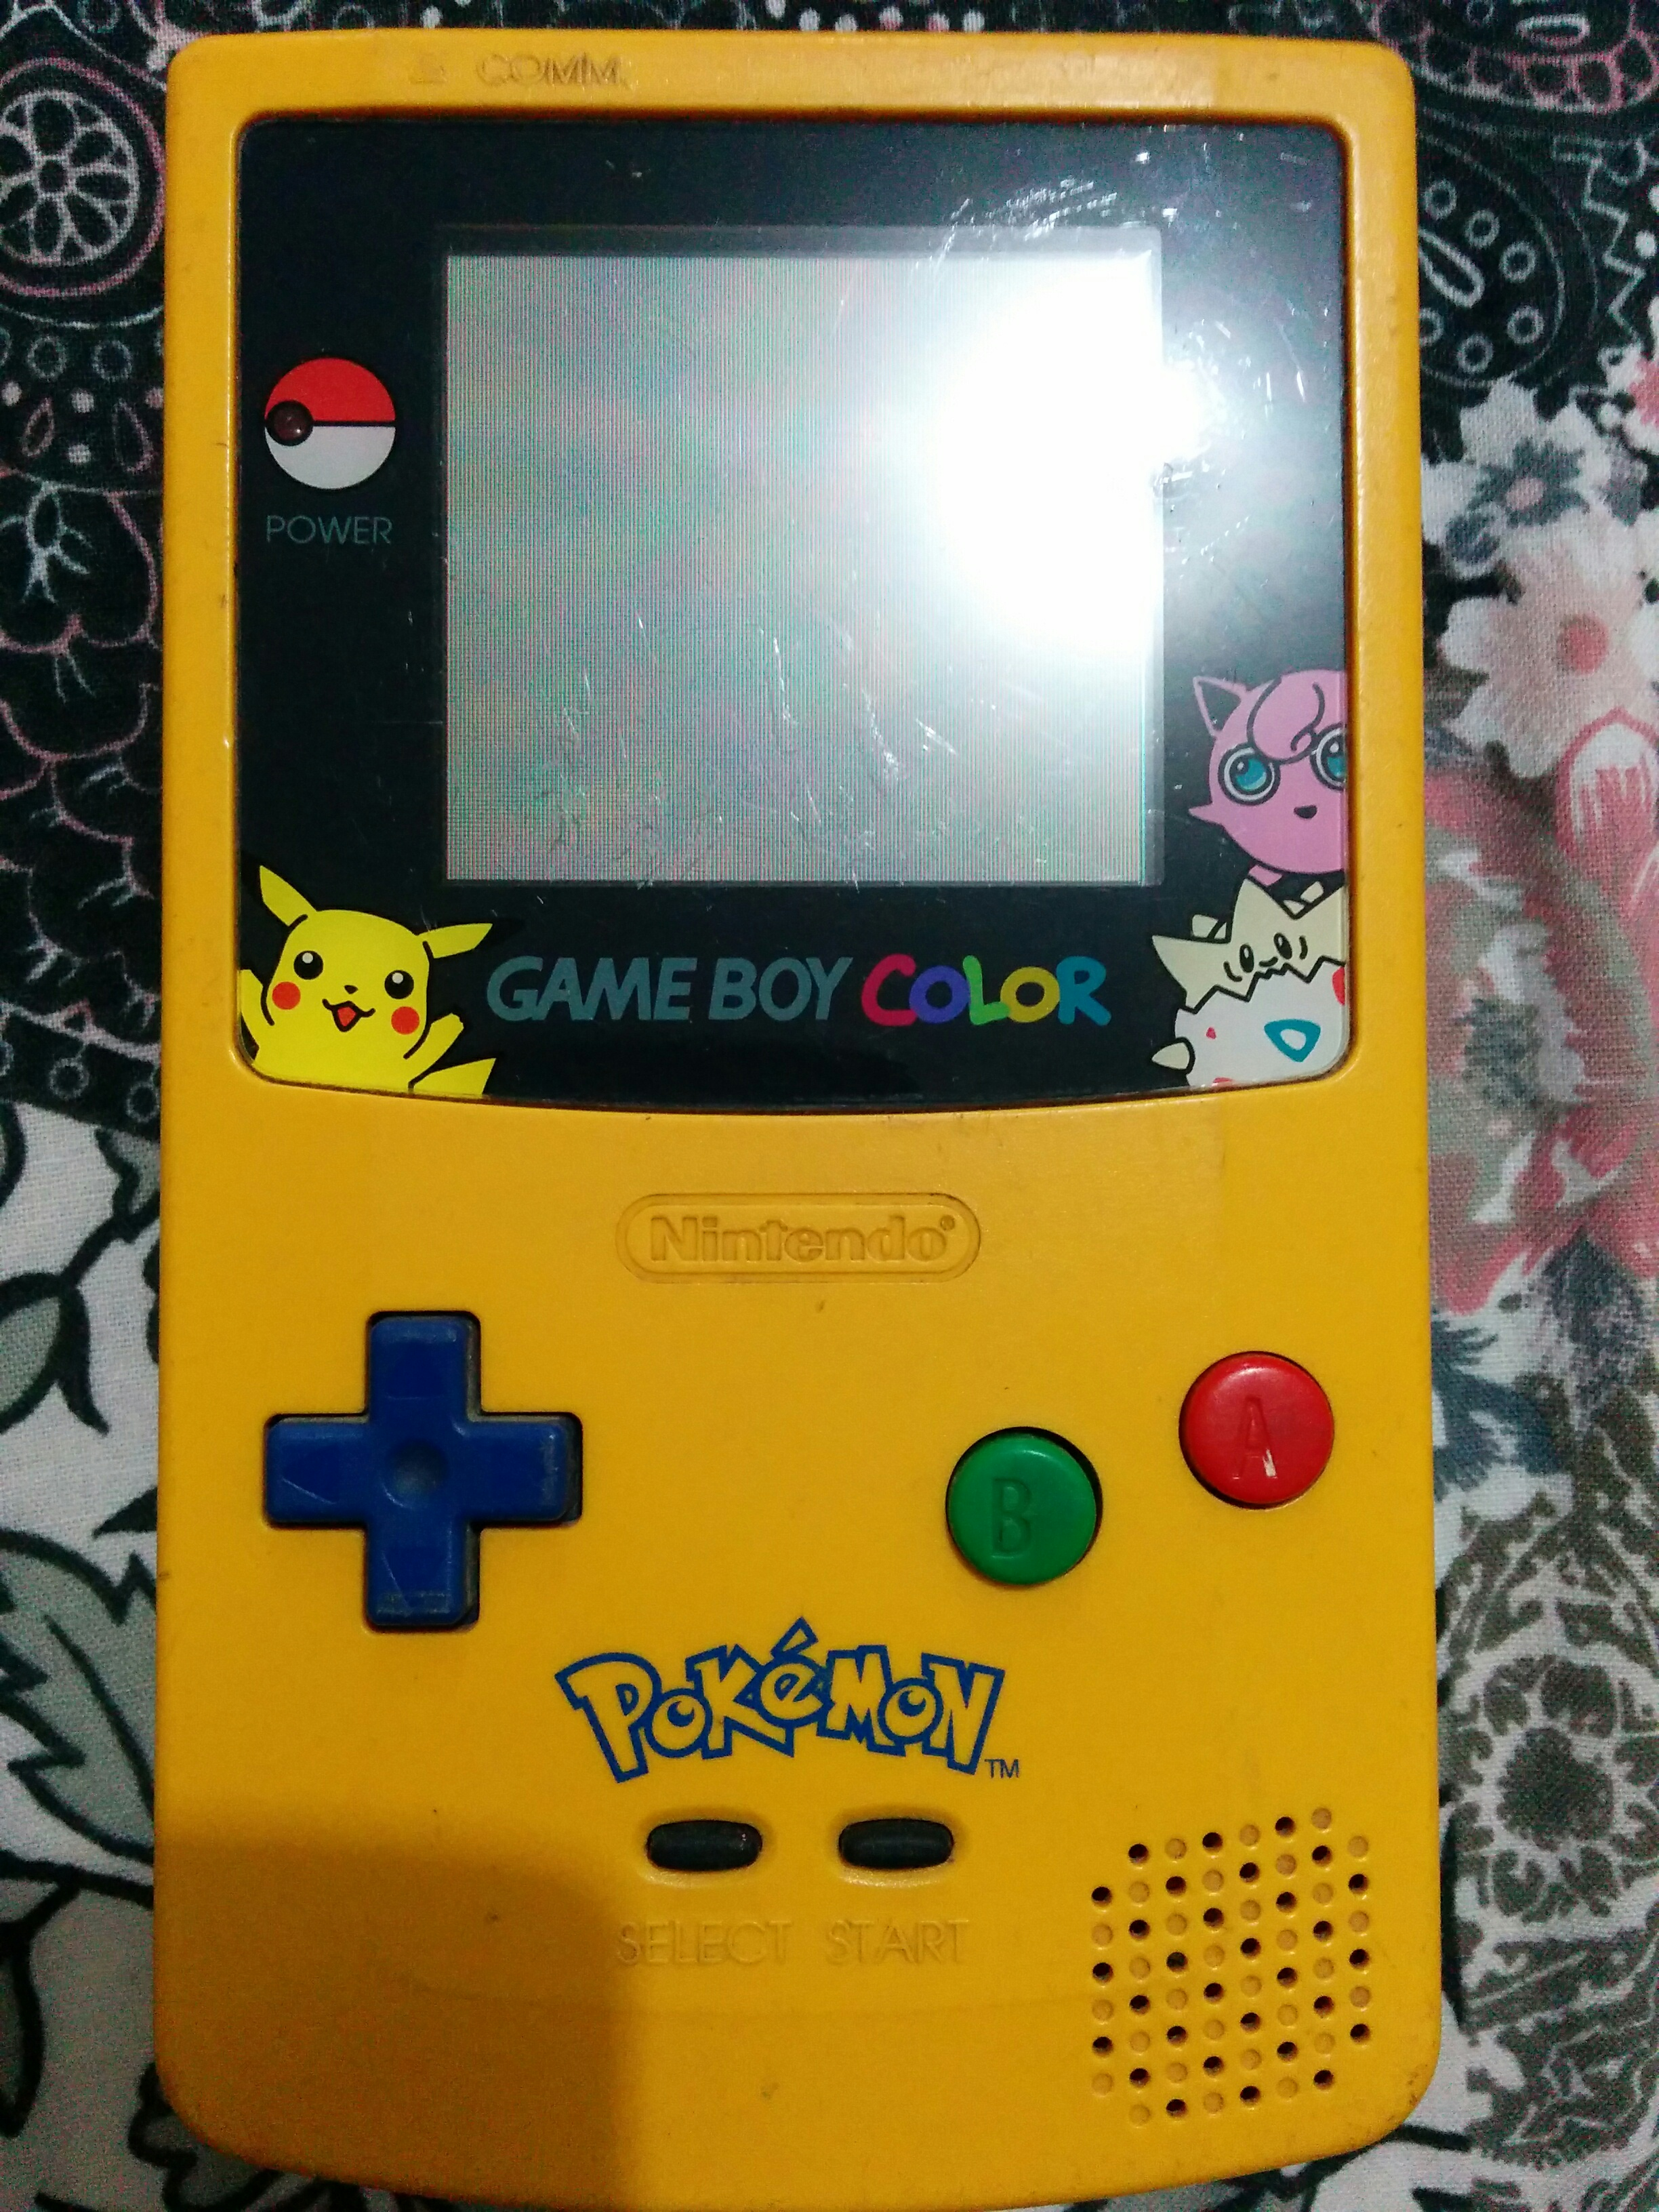 Gameboy color and pokemon yellow - Game Boy Color Pok Mon Yellow Special Edition Front